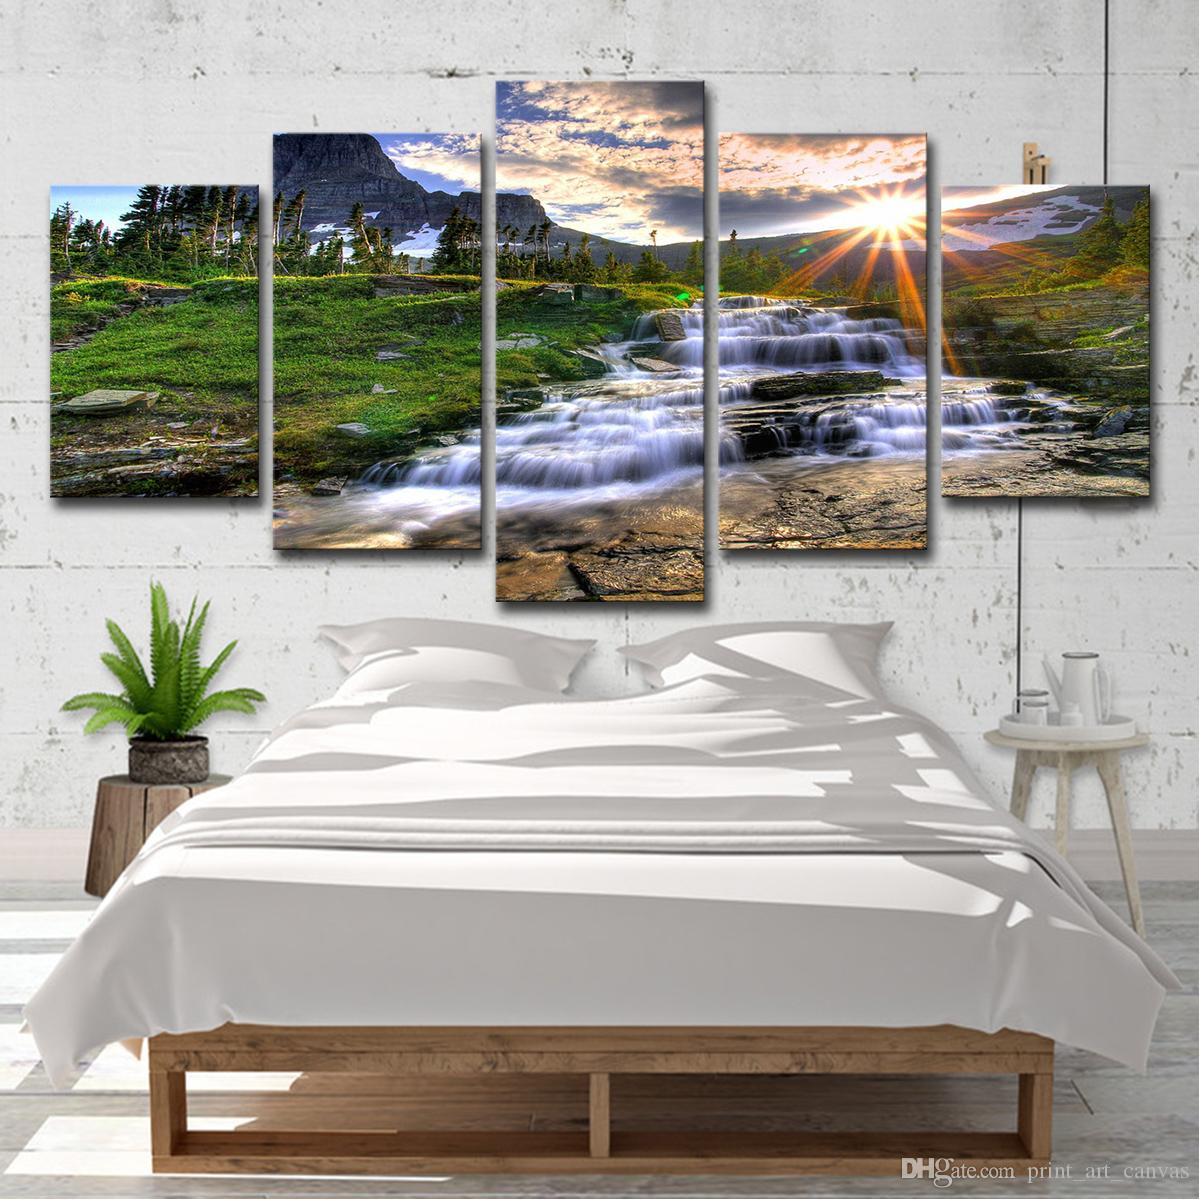 Imágenes de lienzo Arte de la pared Sala de estar Decoración 5 unidades Mountain Waterfall Stream Pintura HD Prints Green Landscape Poster